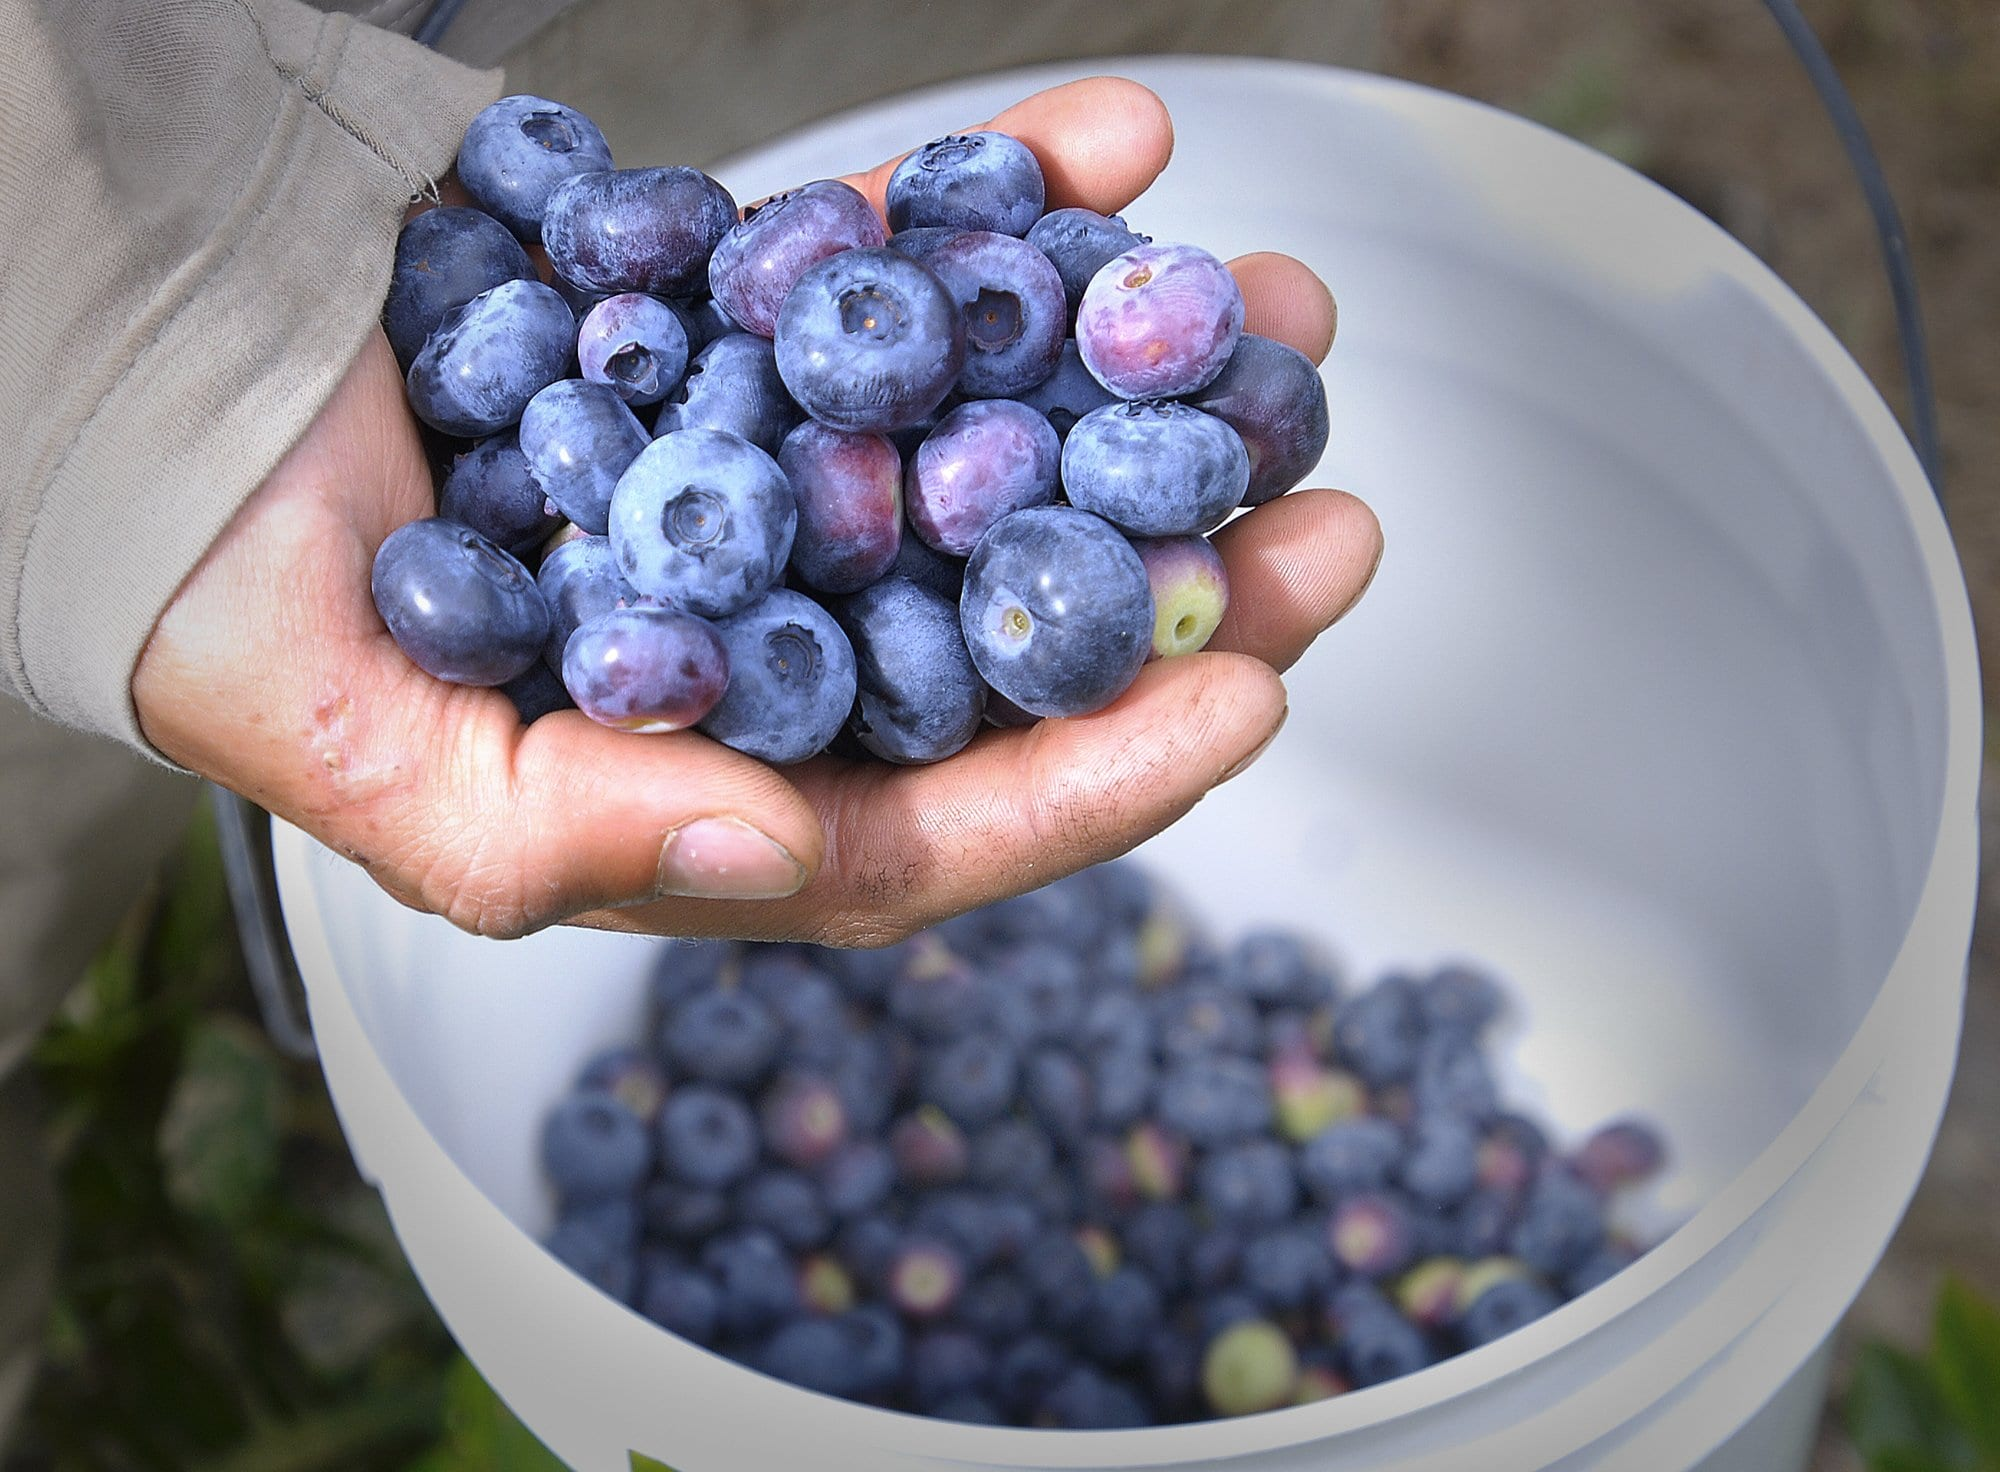 Healthy properties of Blueberries